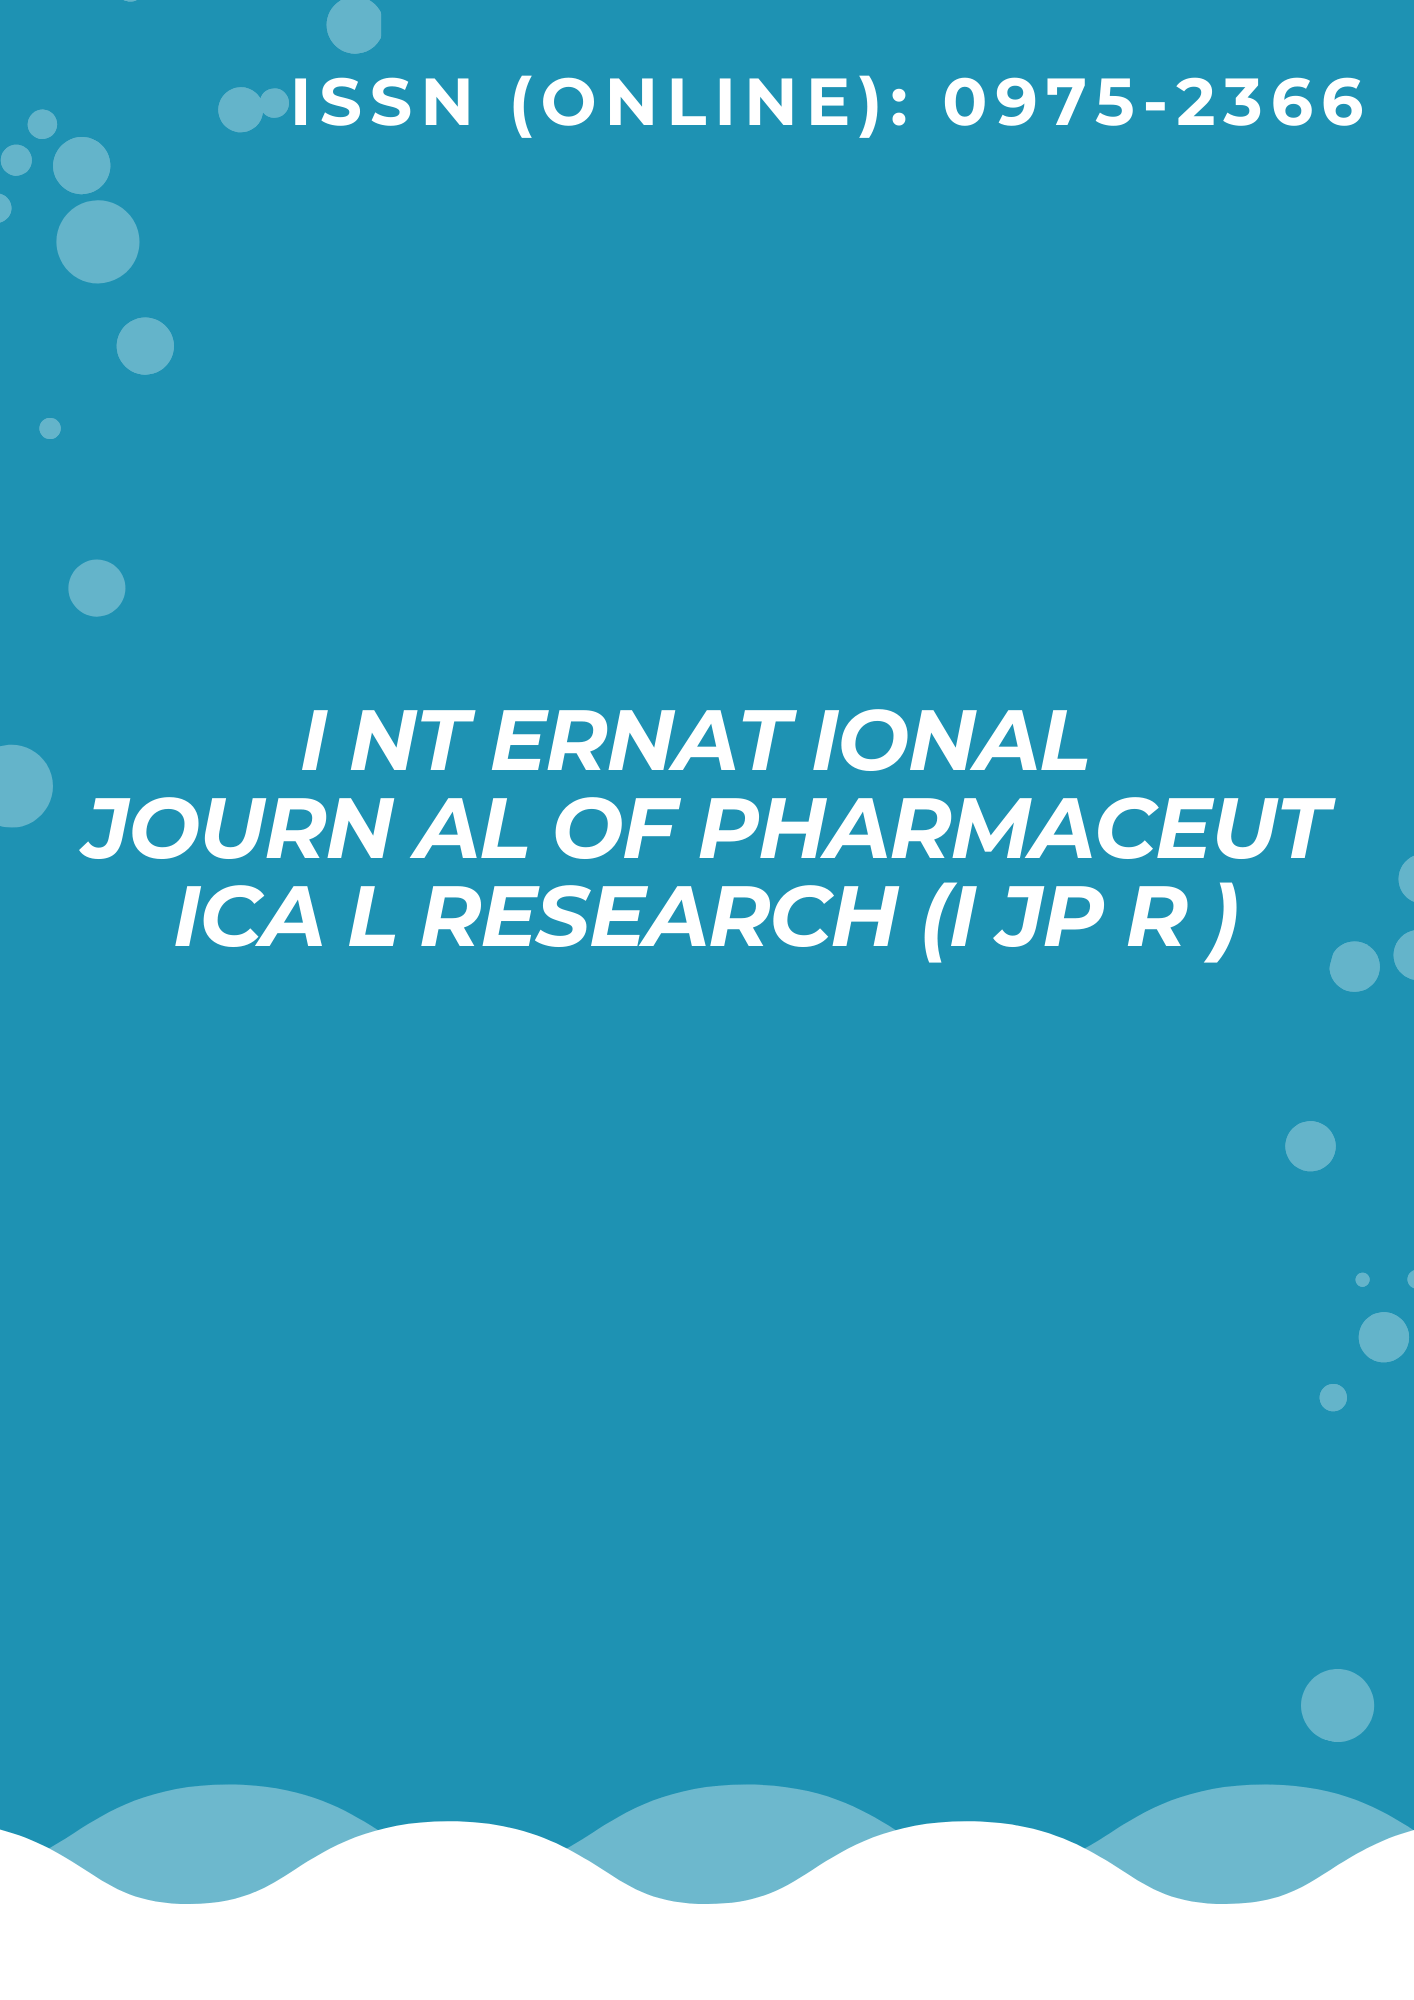 International Journal of Pharmaceutical Research (IJPR )